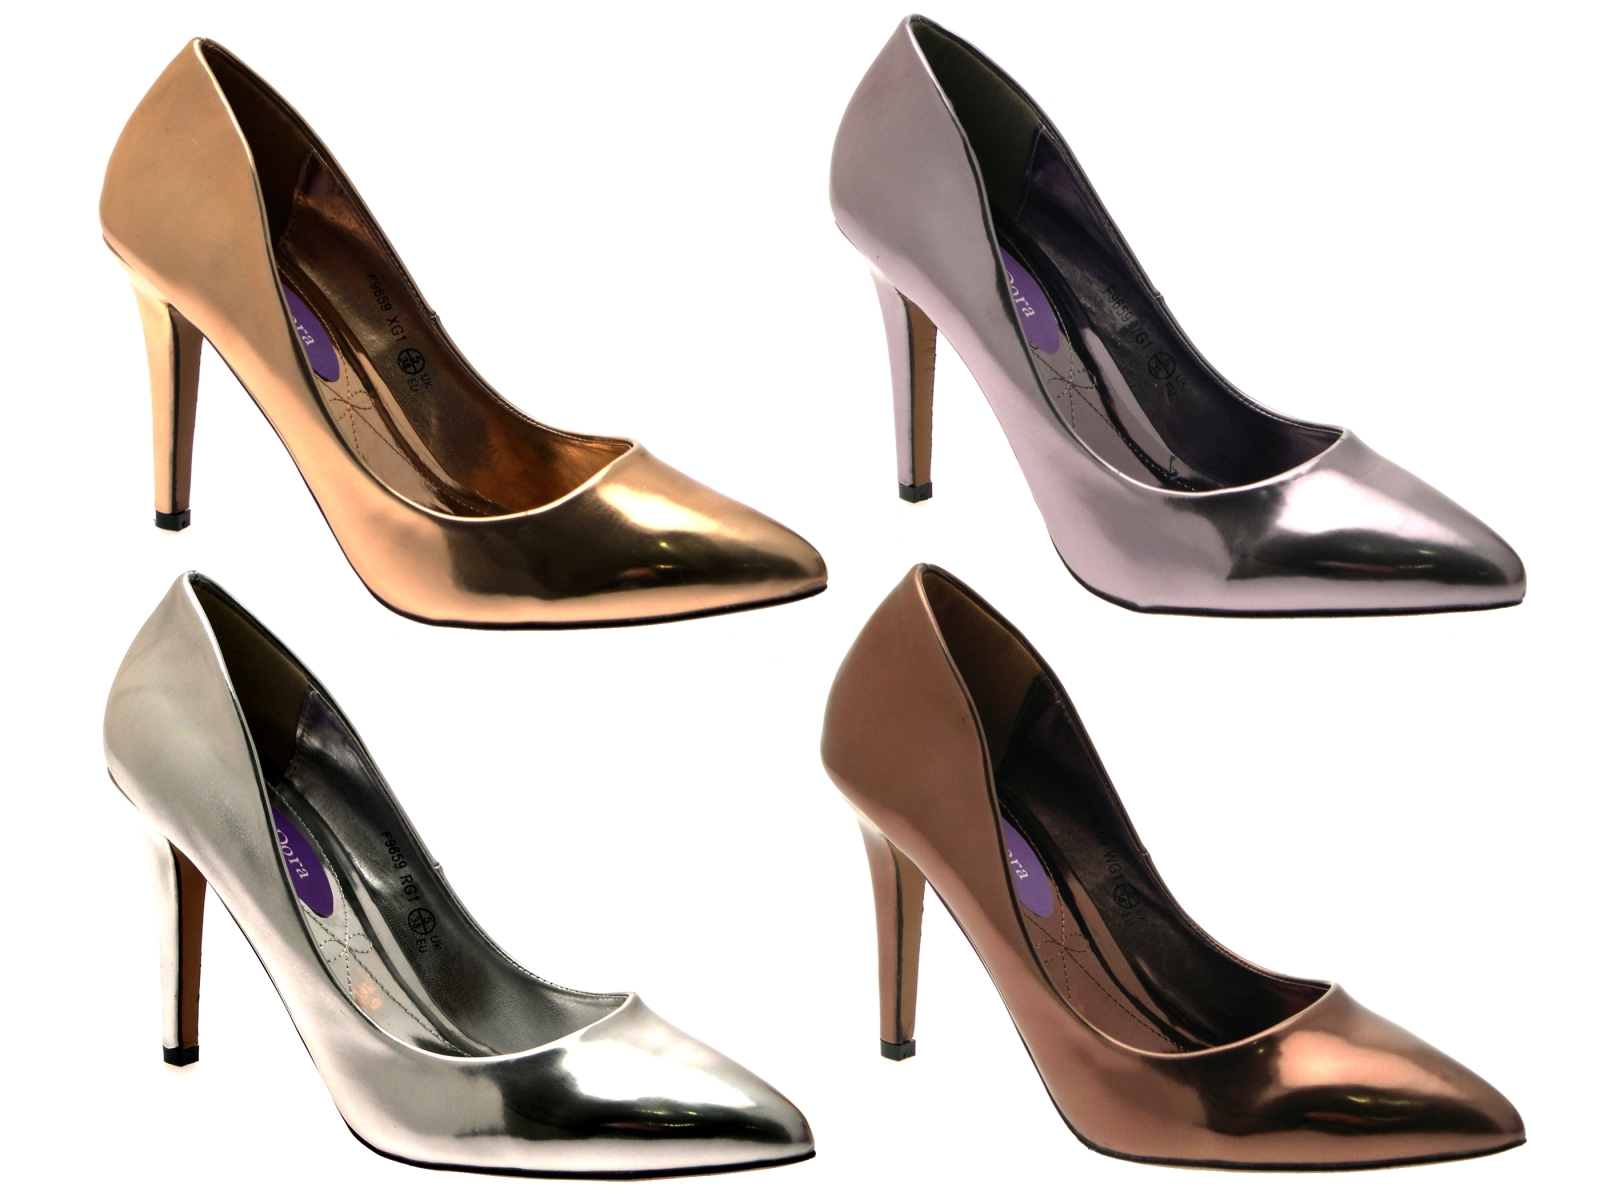 Womens-Metallic-Pointed-Toe-Court-Stiletto-High-Heels-Ladies-Work-Office-Shoes thumbnail 13